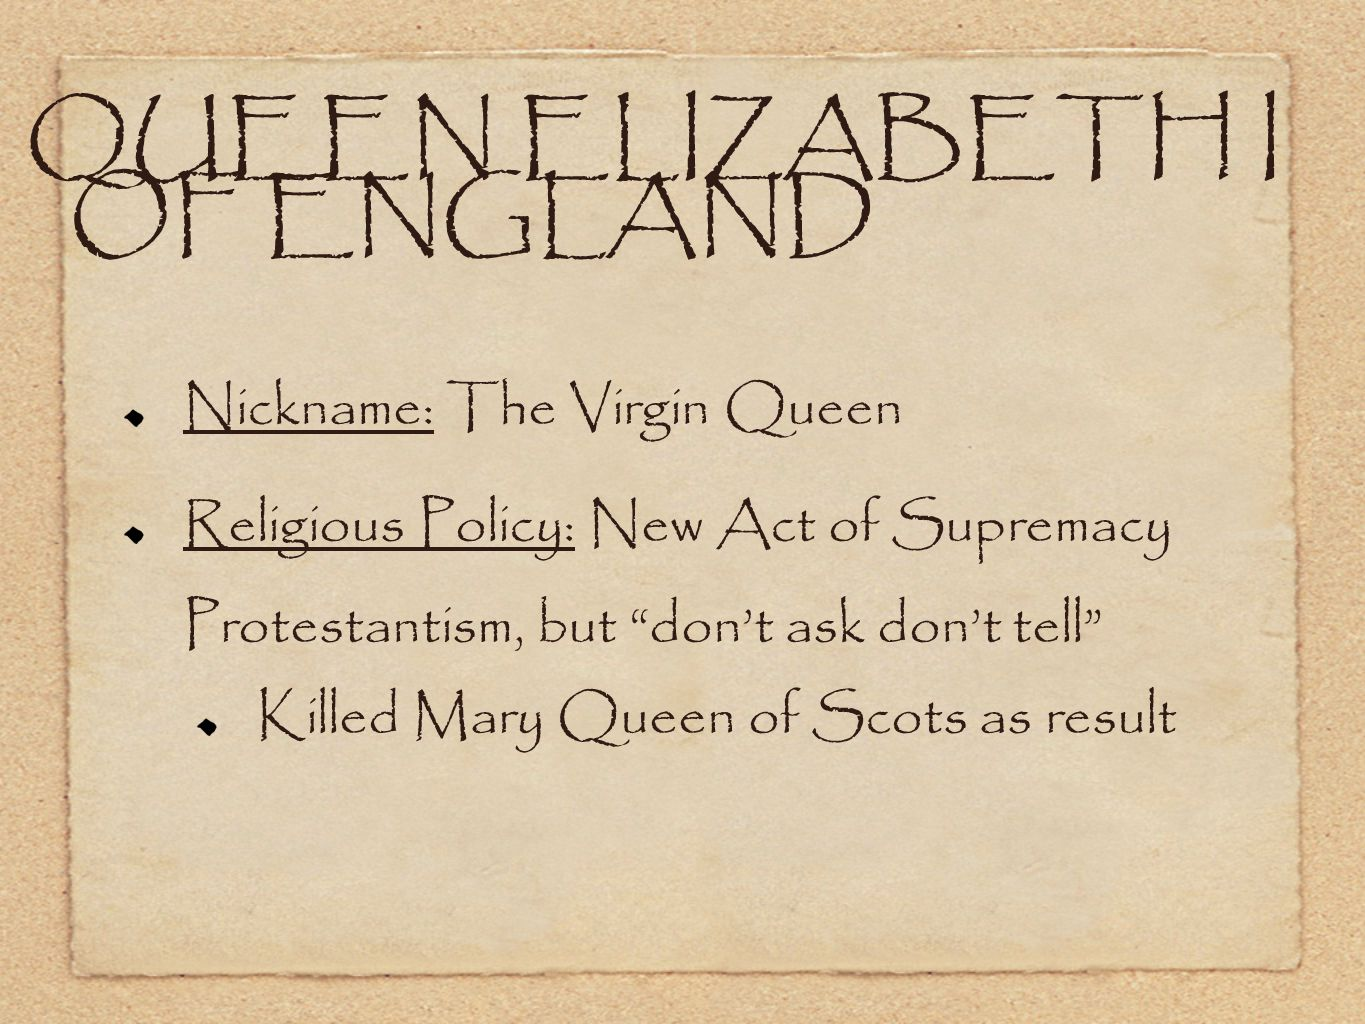 QUEEN ELIZABETH I OF ENGLAND Nickname: The Virgin Queen Religious Policy: New Act of Supremacy Protestantism, but don't ask don't tell Killed Mary Queen of Scots as result